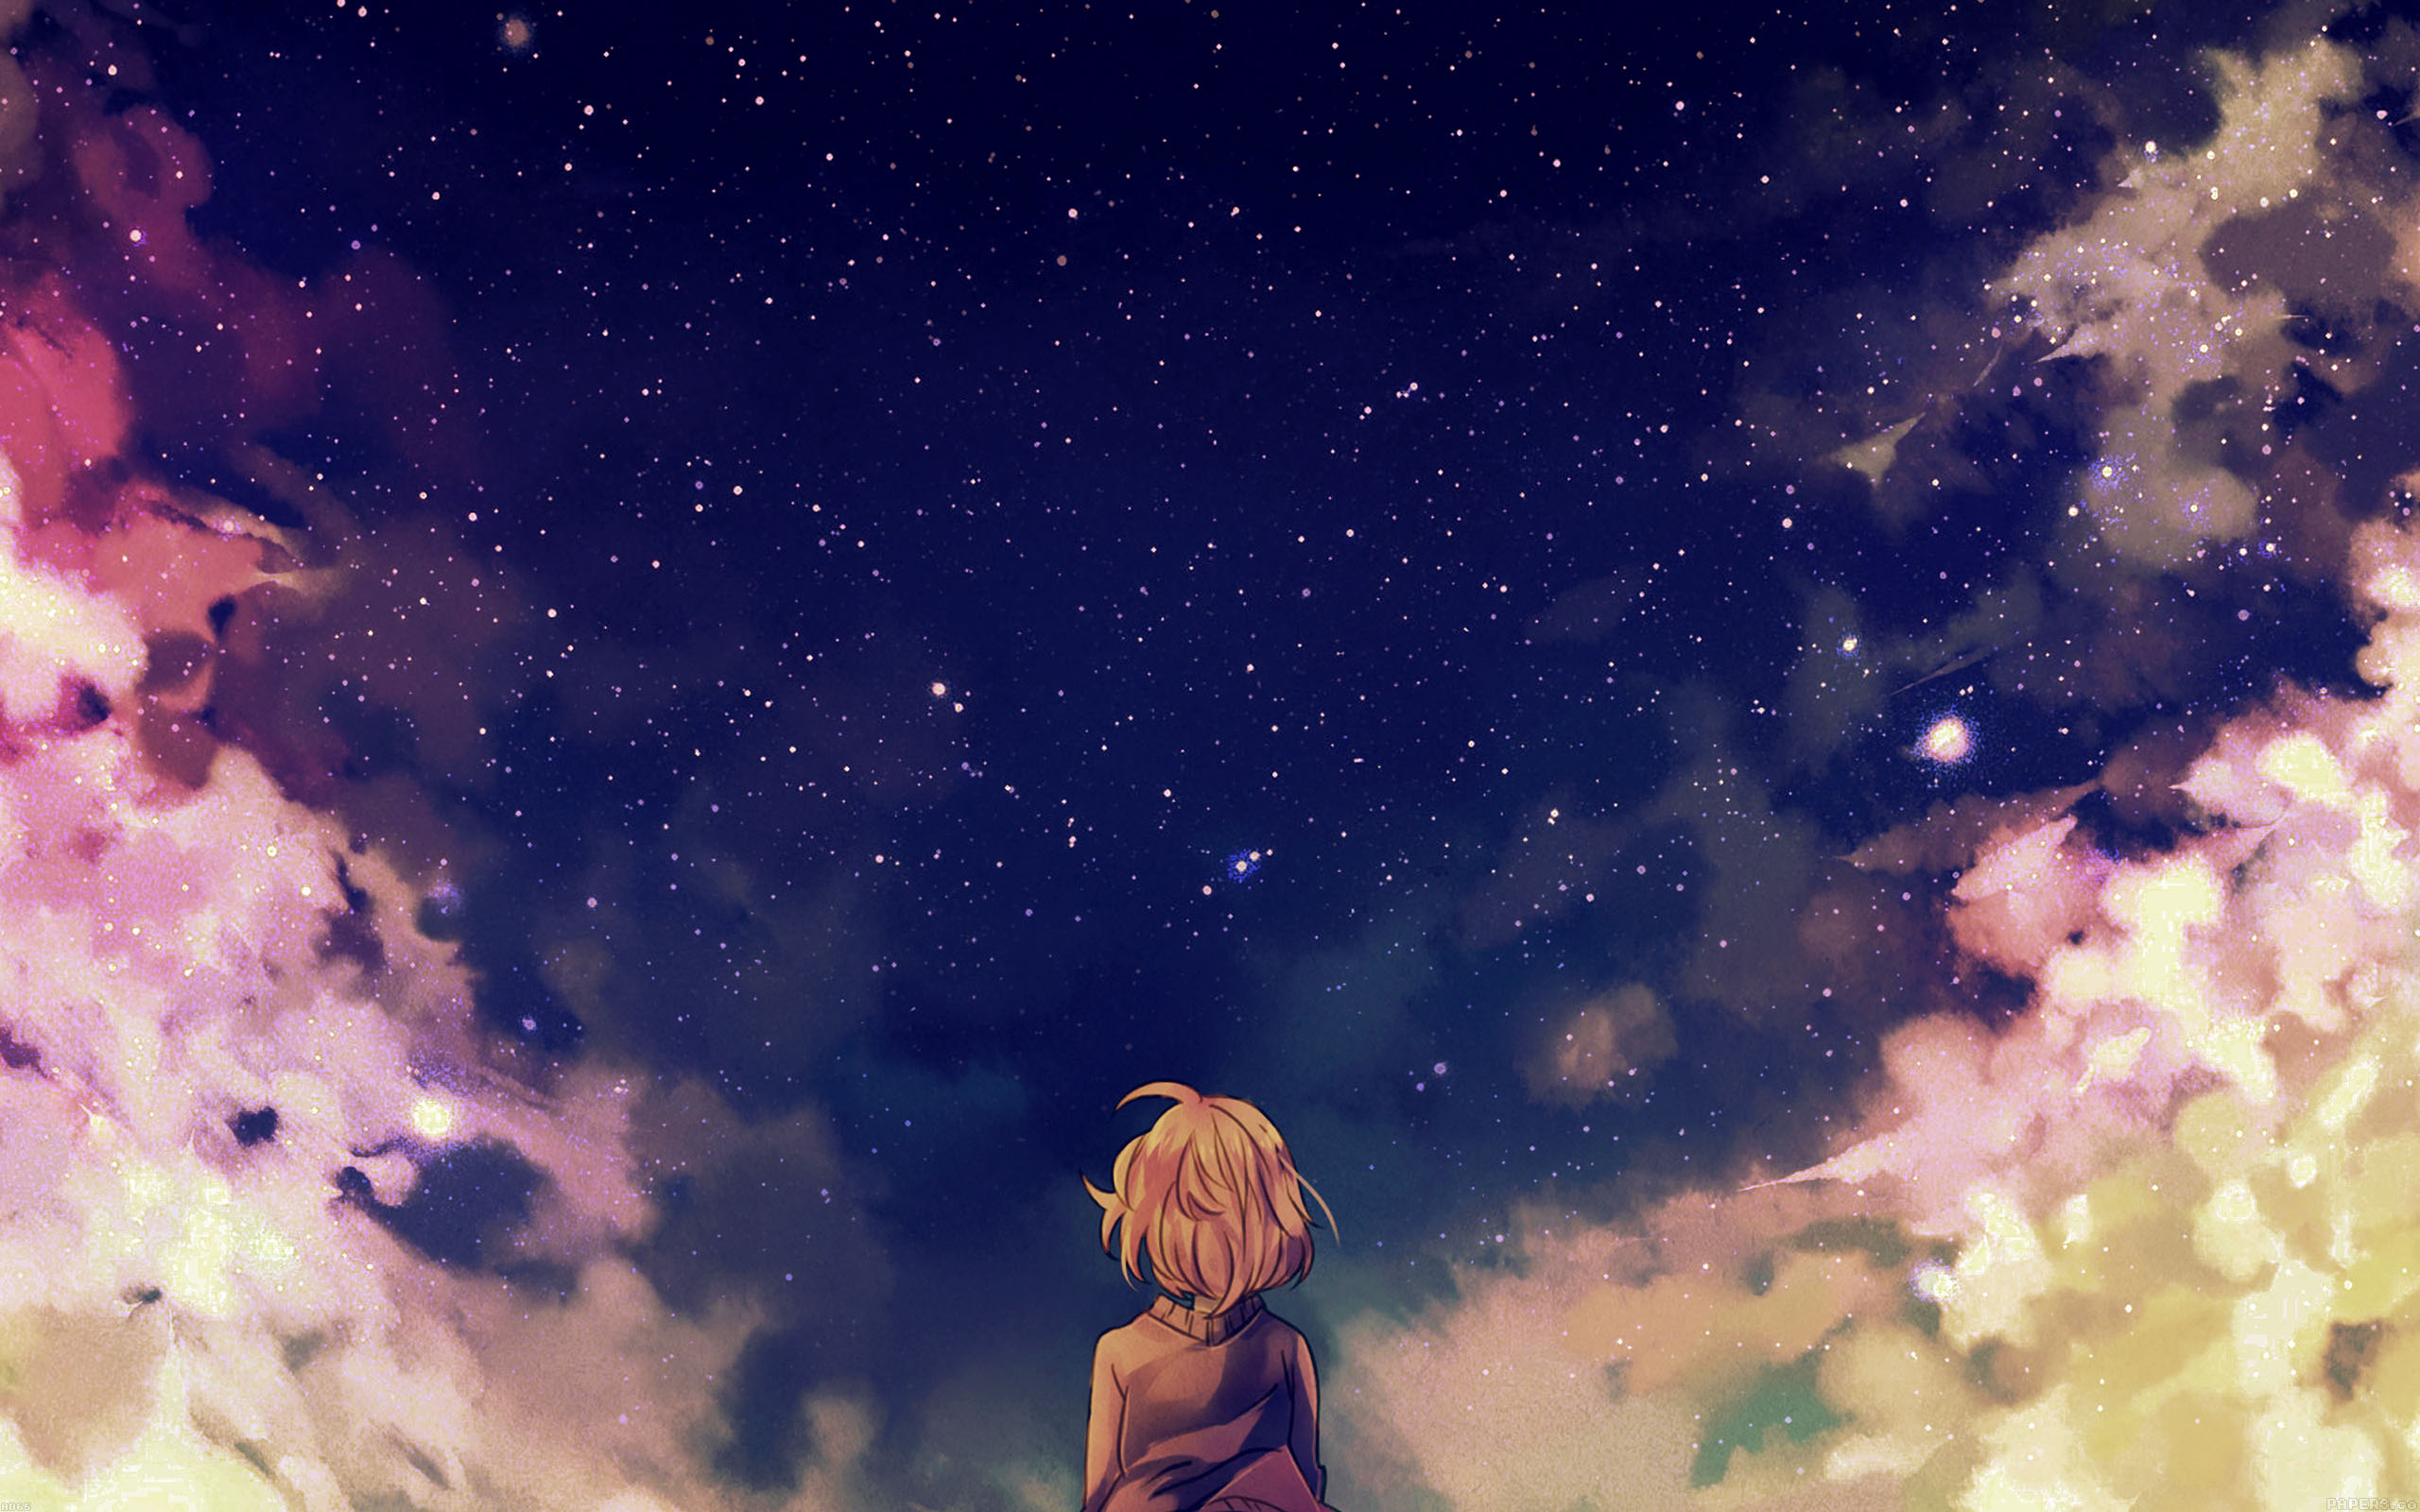 Beautiful Simple Girl Wallpaper Ad65 Starry Space Illust Anime Girl Wallpaper